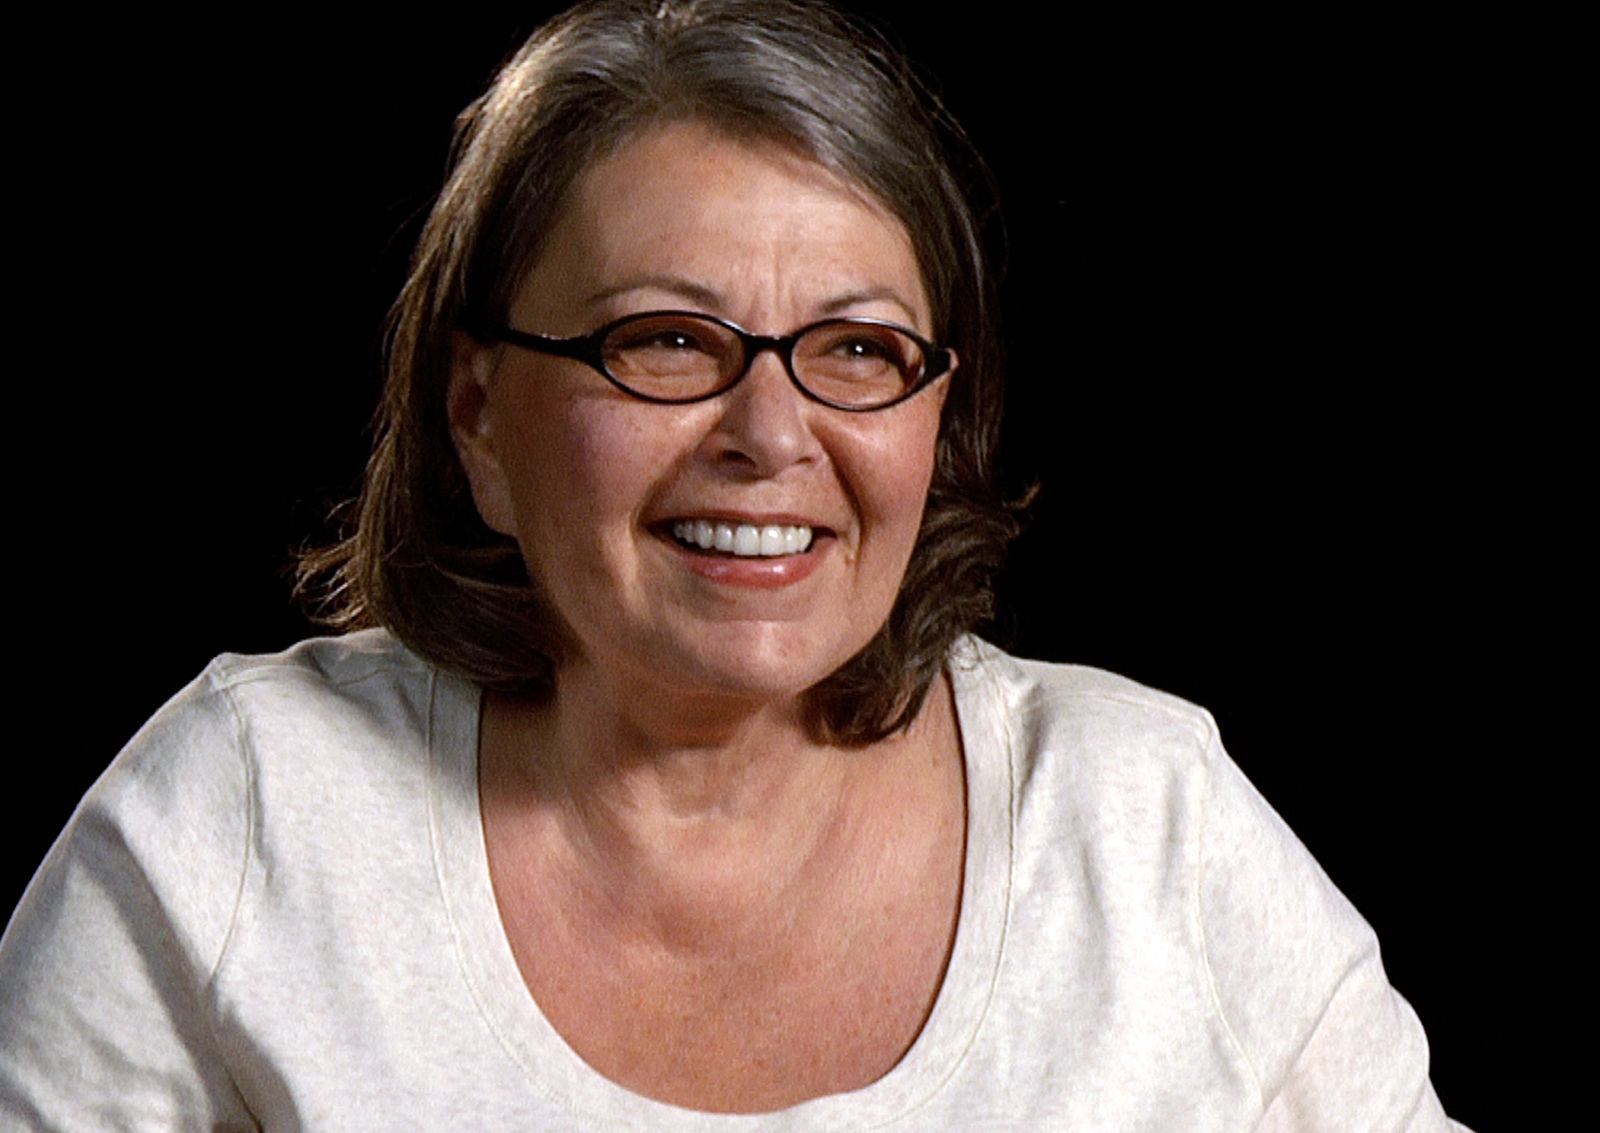 Roseanne barr 25 Times Celebrities Admitted To Awful Things In Interviews